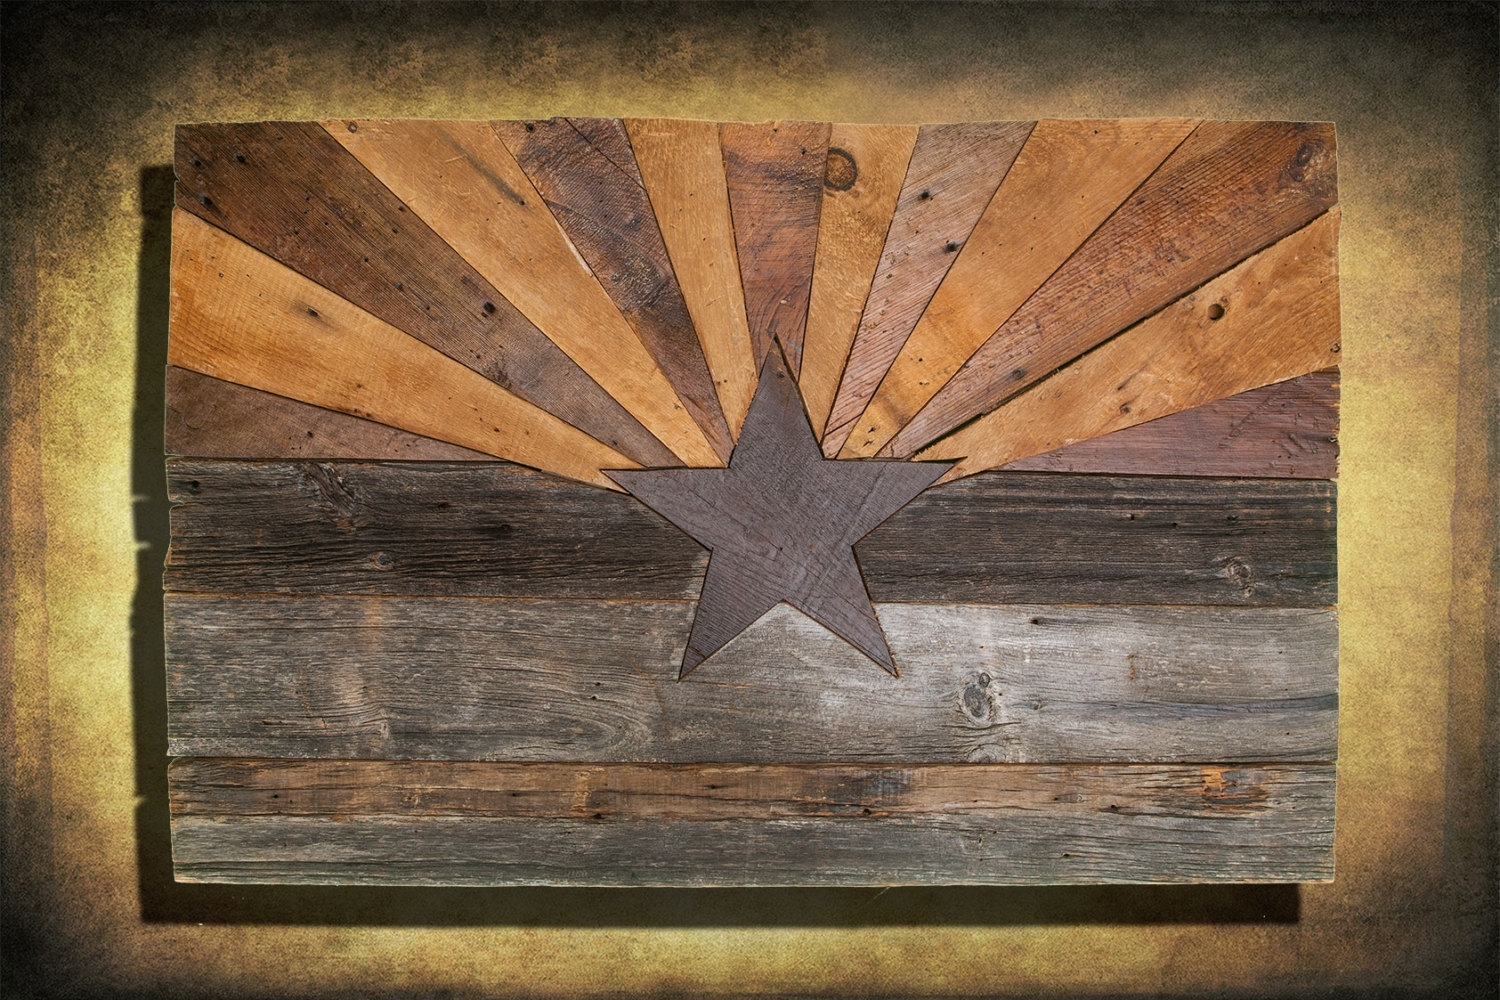 Barn Wood Arizona Flag, Handmade, Distressed Natural Wood, Vintage For Best And Newest Arizona Wall Art (View 10 of 20)